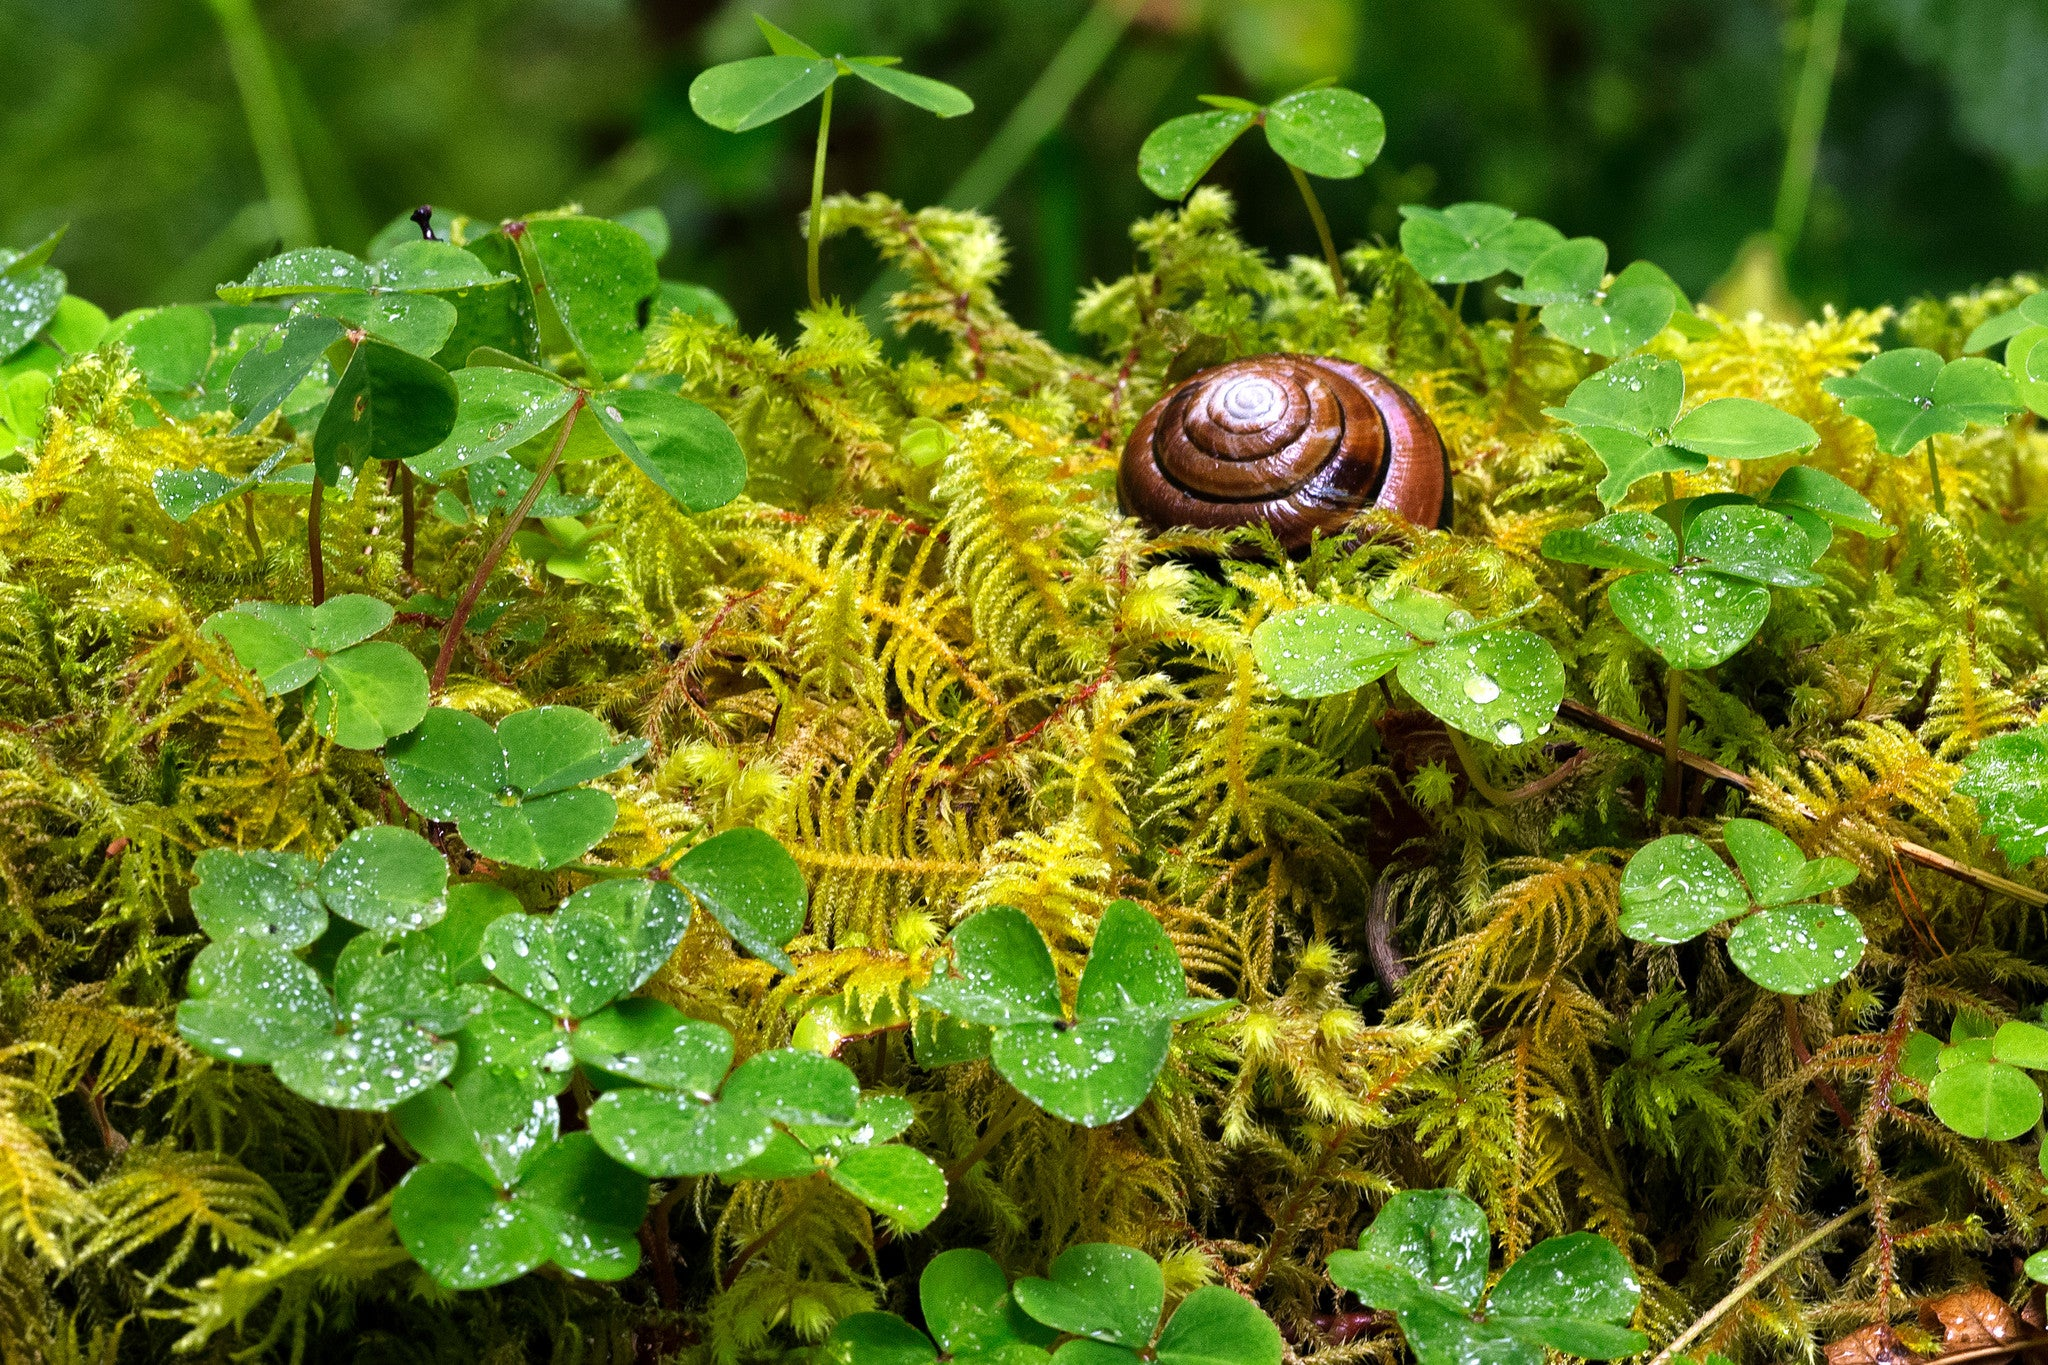 Snail at Rest - Hoh Rain Forest, British Columbia